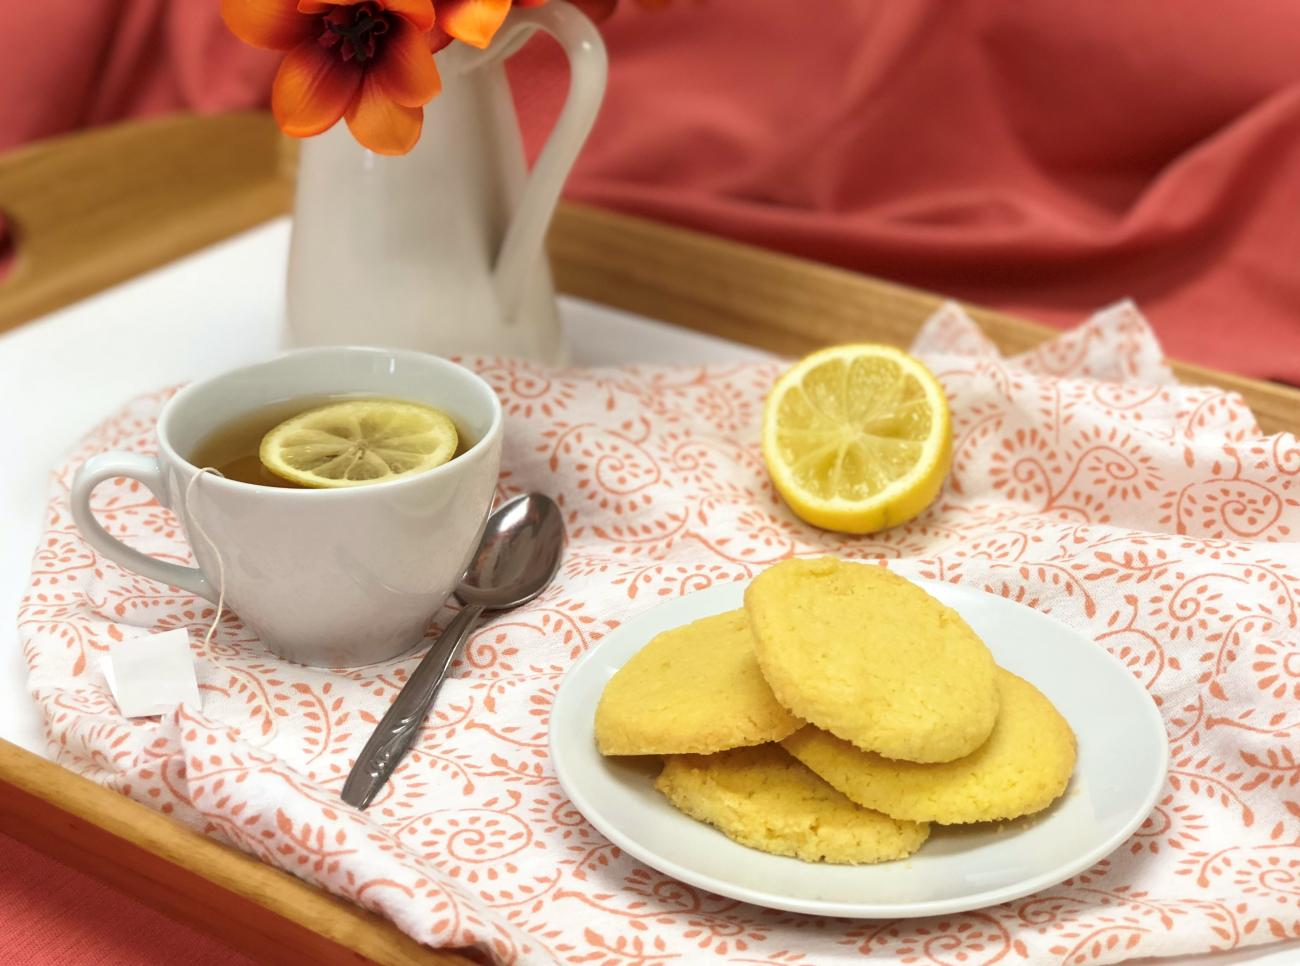 Recipe for Lemon Cornmeal Cookies